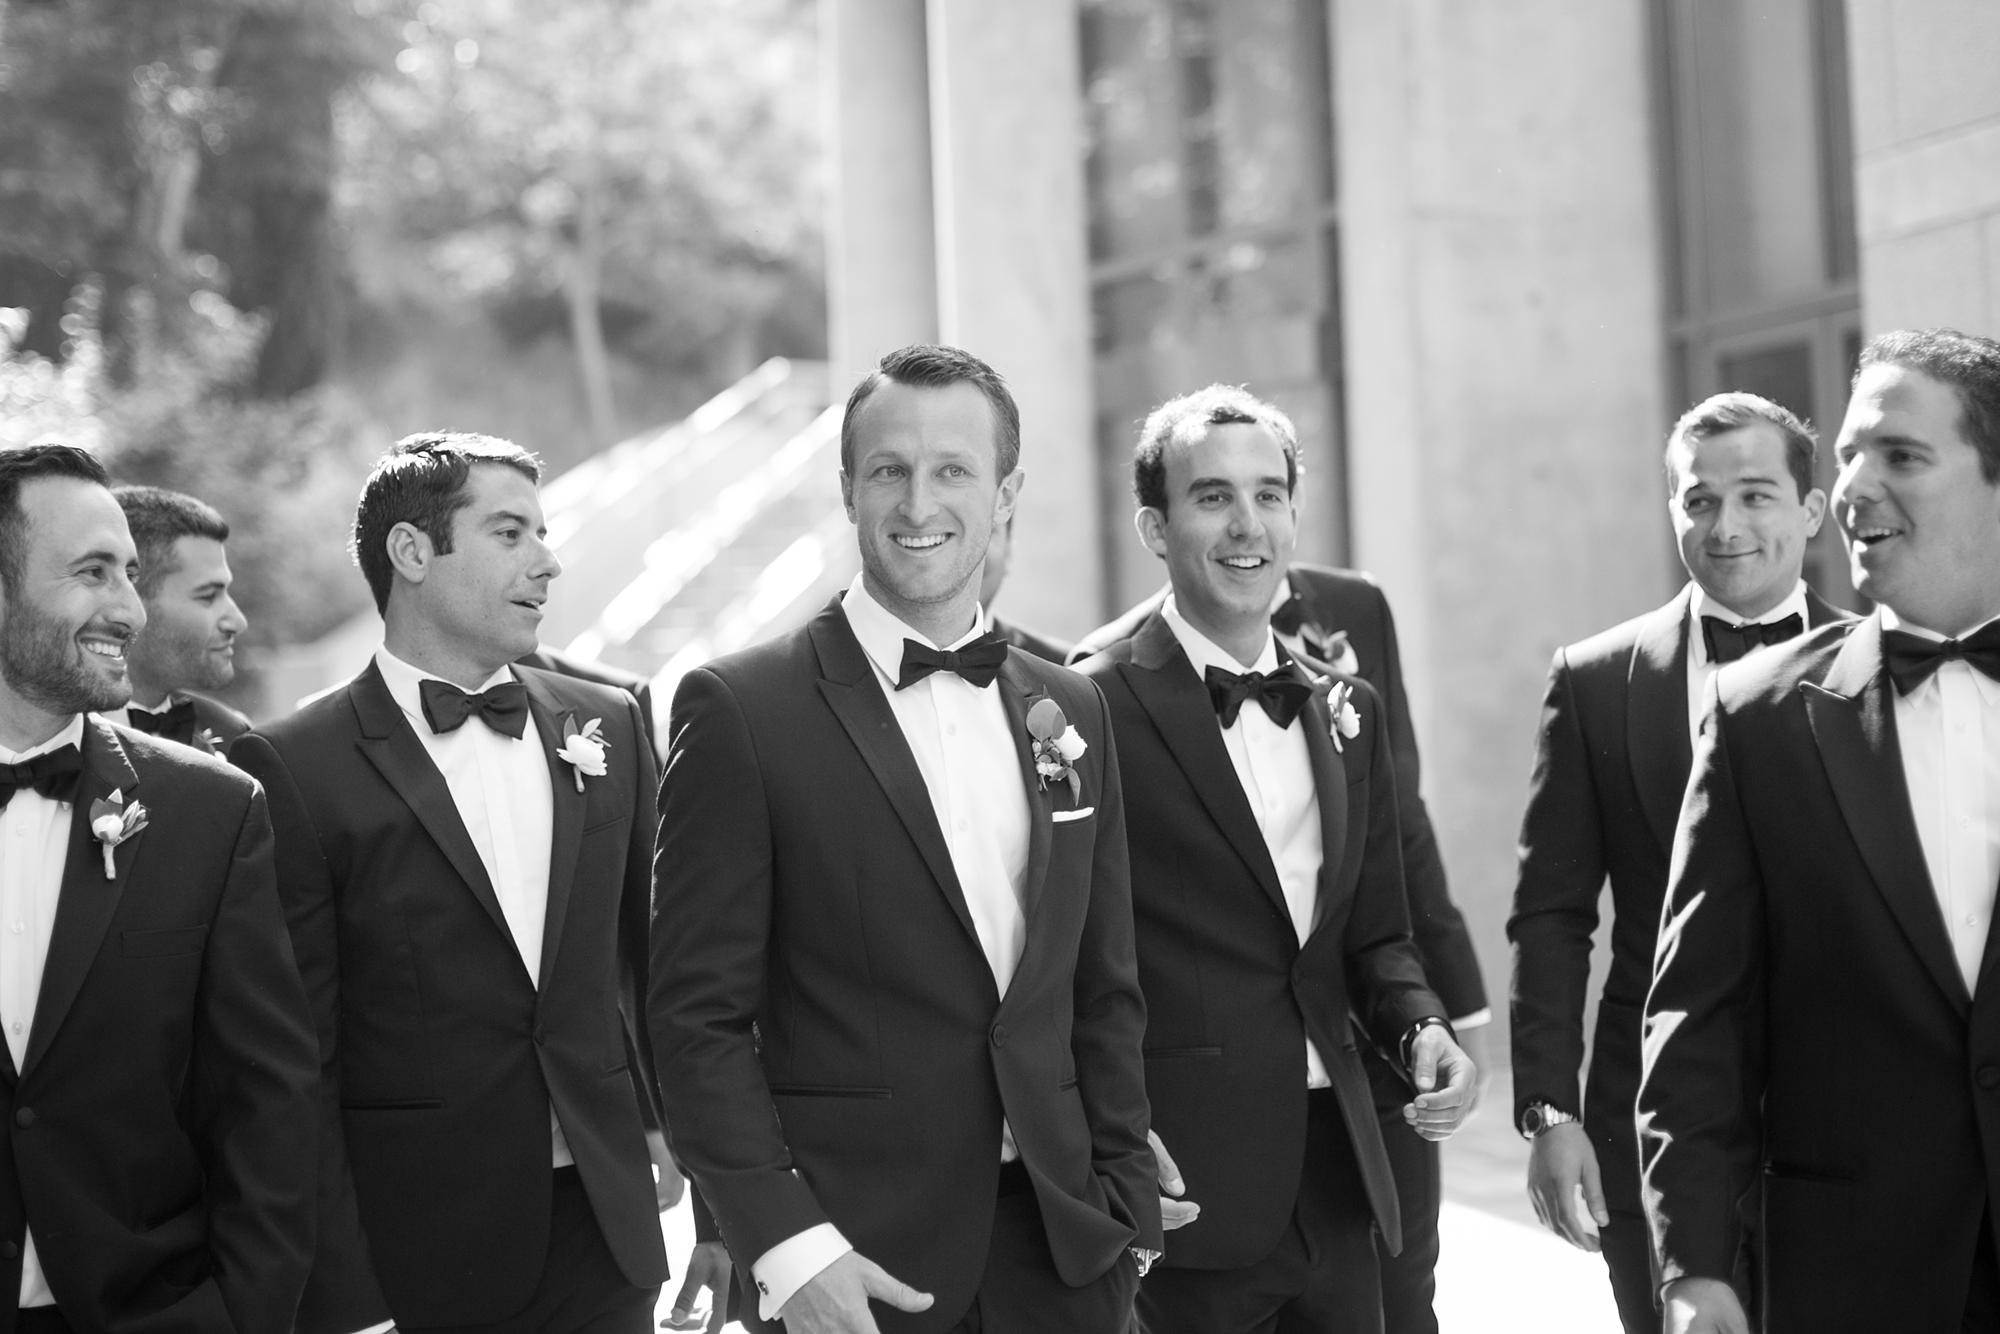 Skirball Cultural Center Wedding | Miki & Sonja Photography | mikiandsonja.com